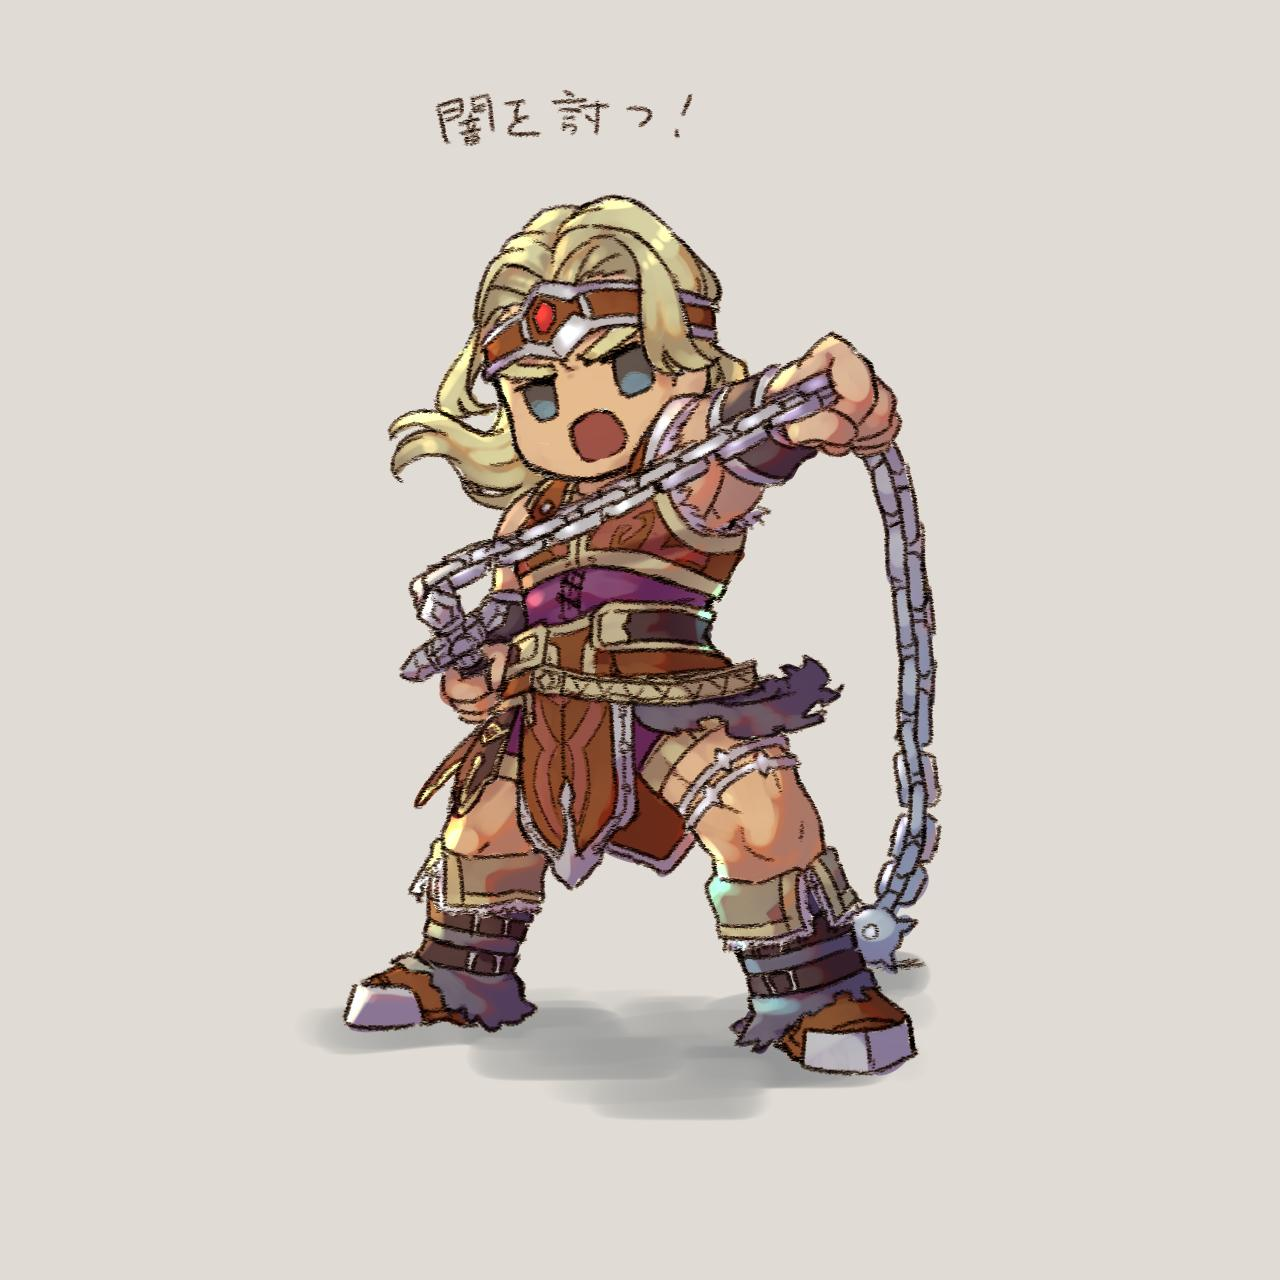 1boy armor belt blonde_hair blue_eyes castlevania chibi gloves headband highres ia_takame long_hair looking_at_viewer male_focus muscle open_mouth short_hair simon_belmondo simple_background smile solo super_smash_bros. translation_request weapon whip